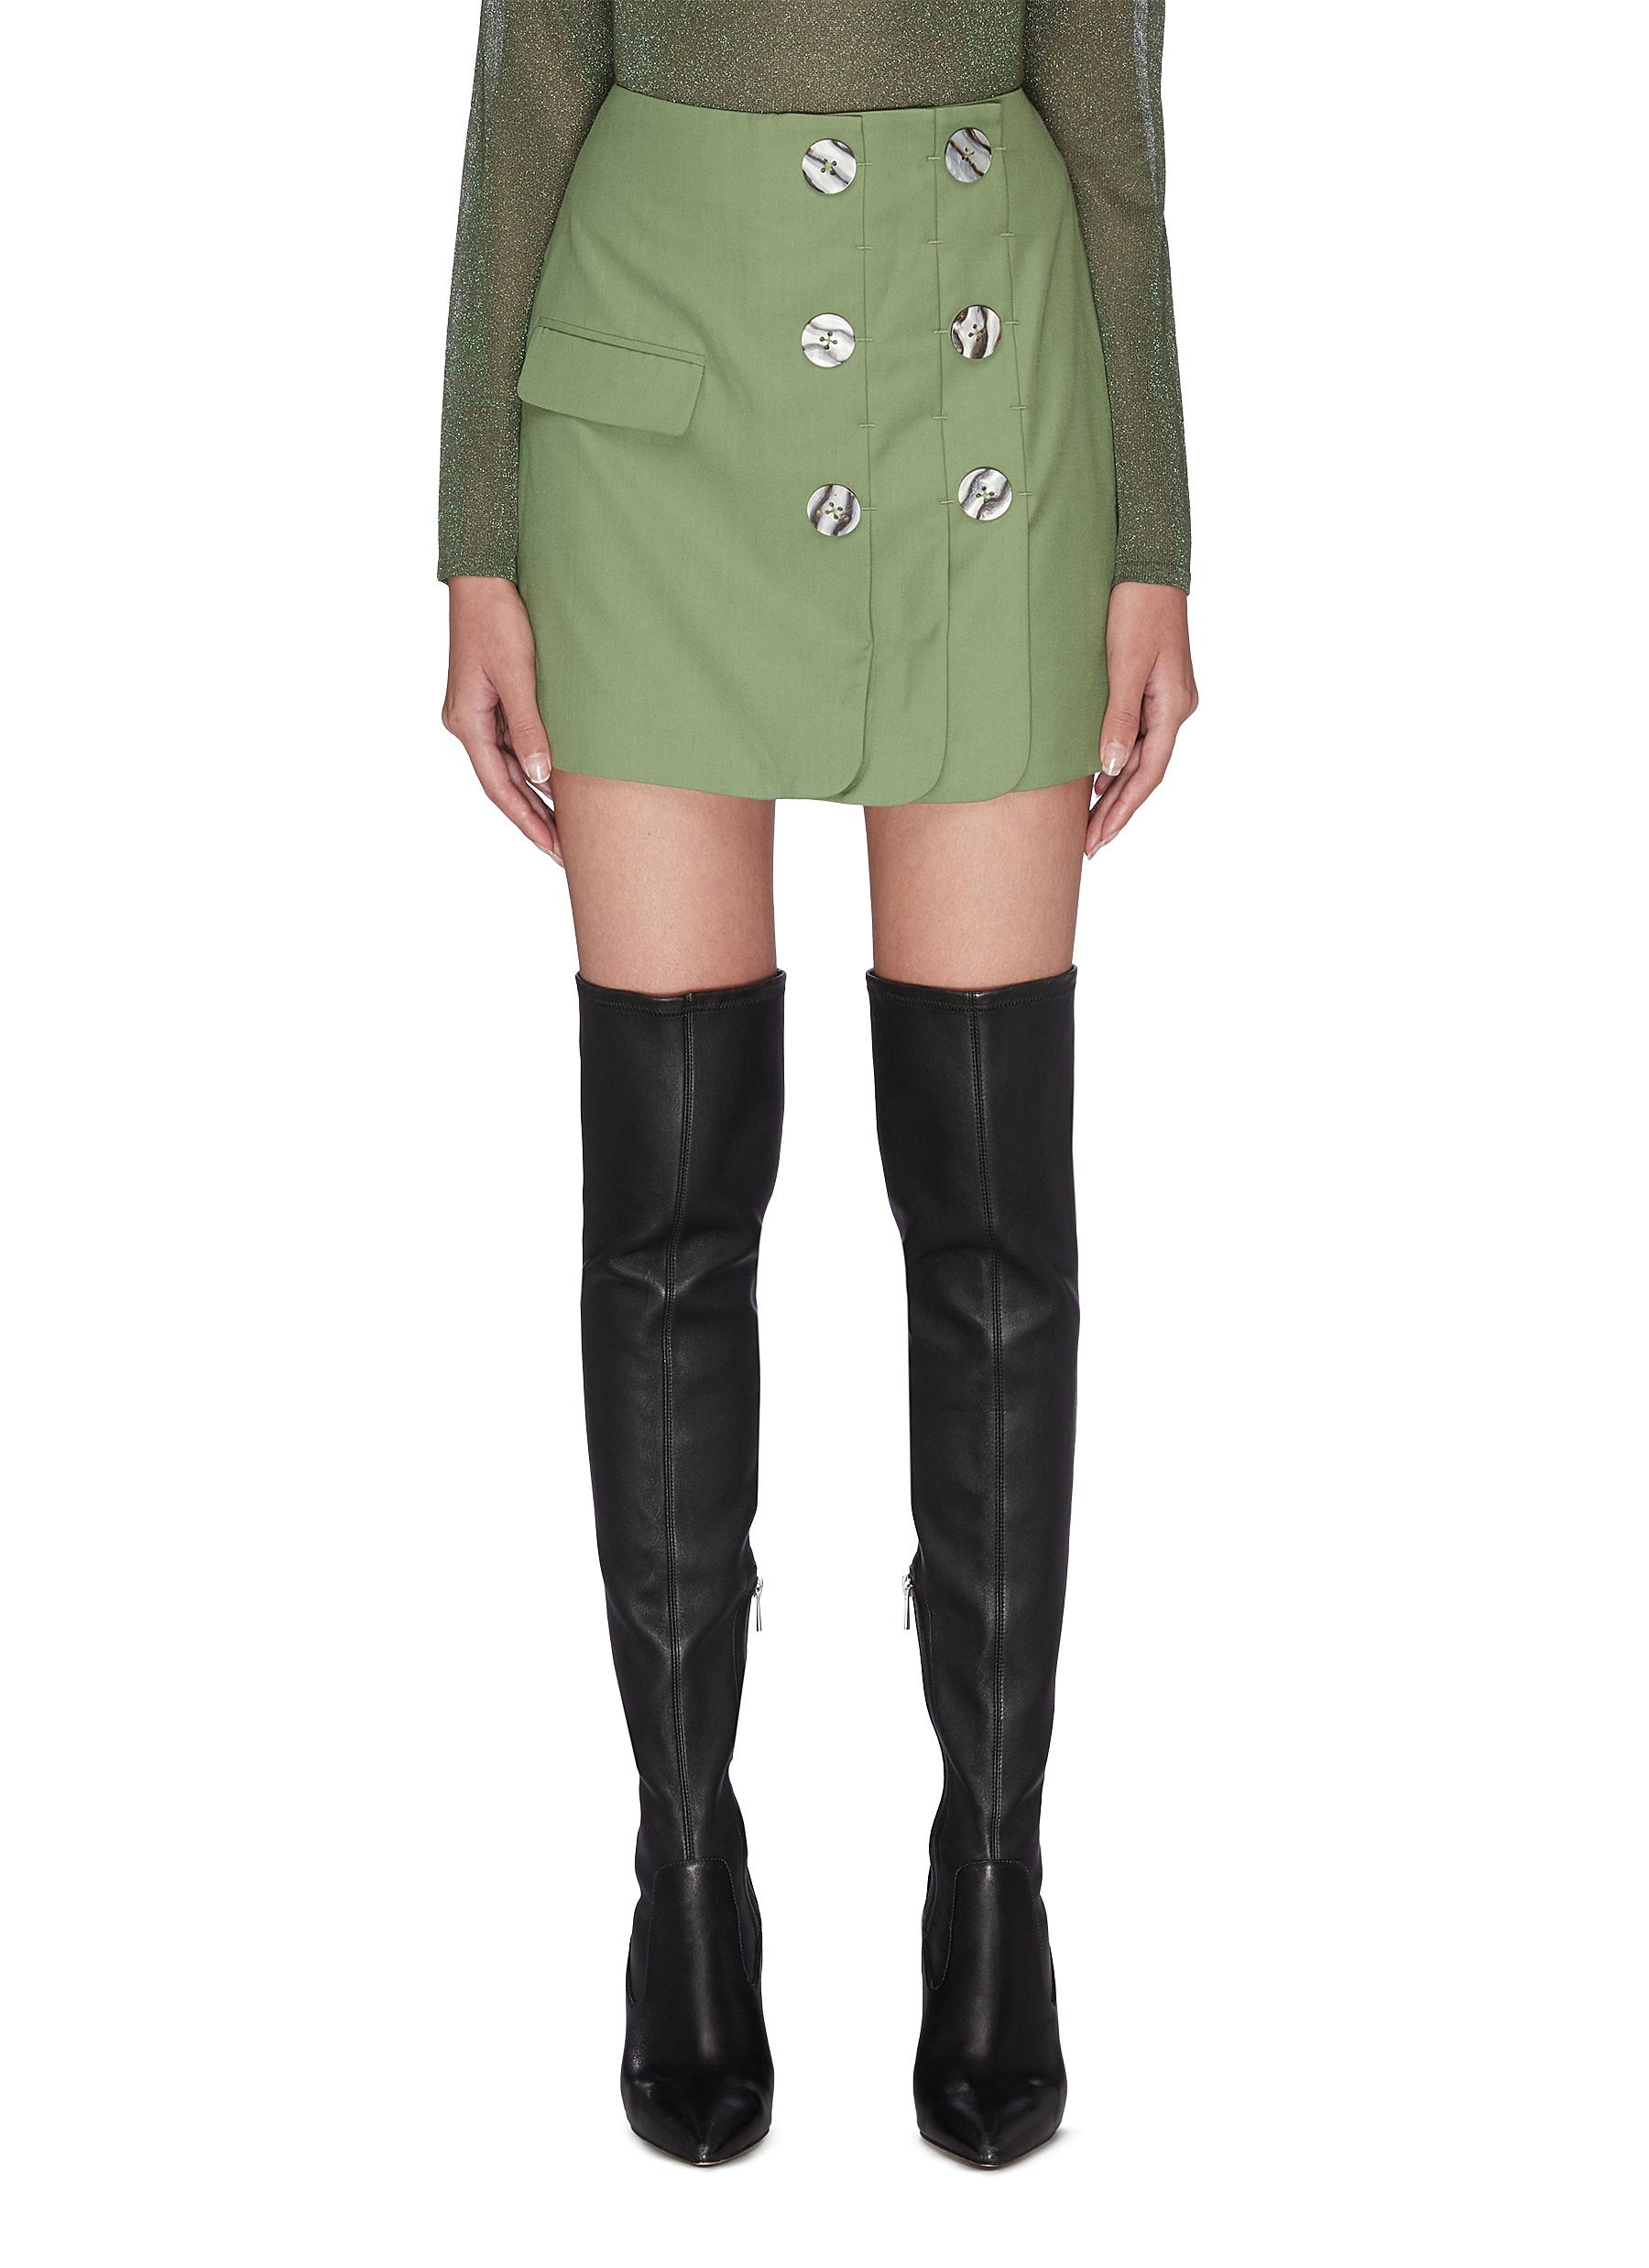 Buy C/Meo Collective Skirts 'Just the same' double button A-line mini skirt